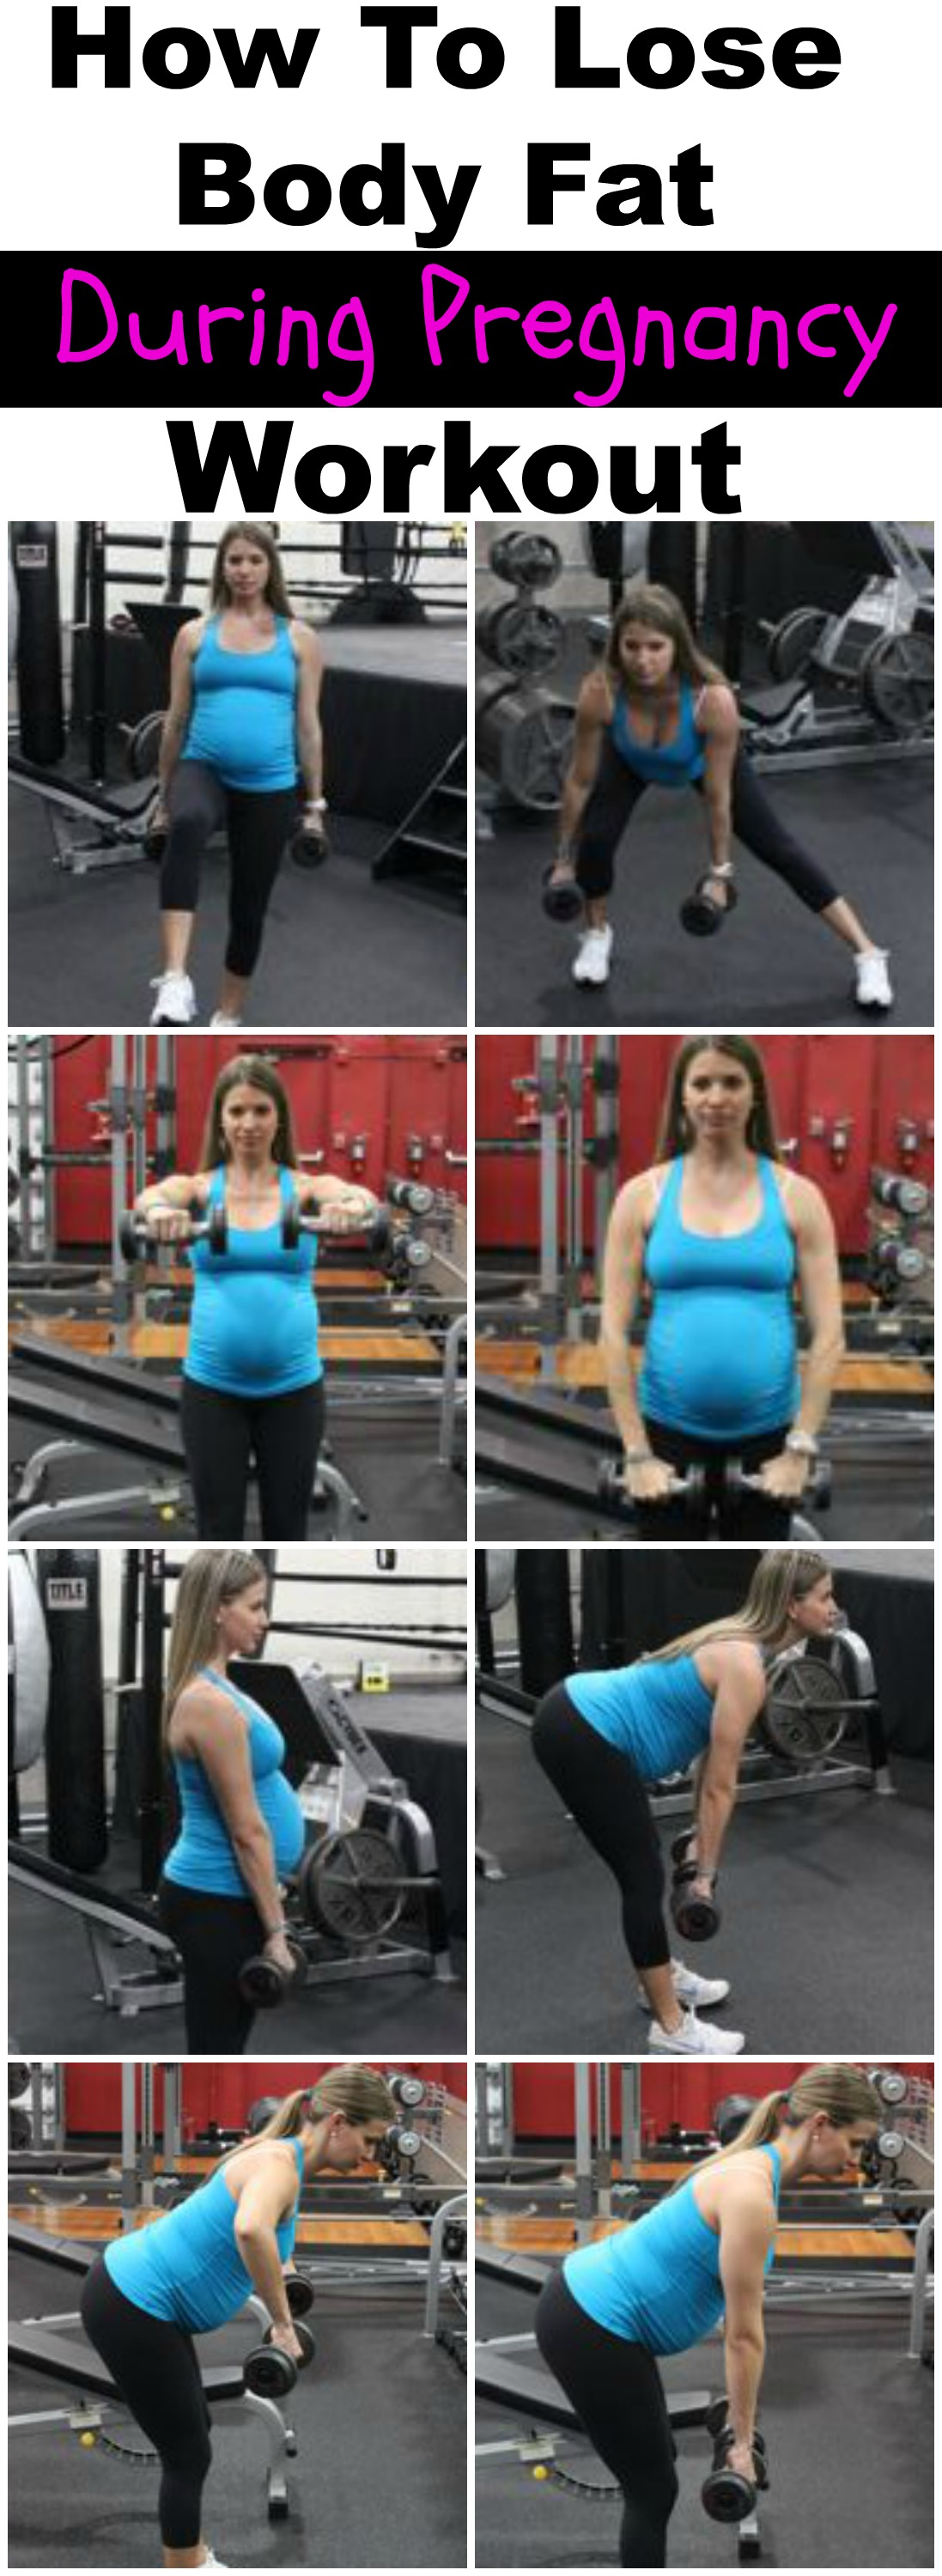 need to lose weight while pregnant